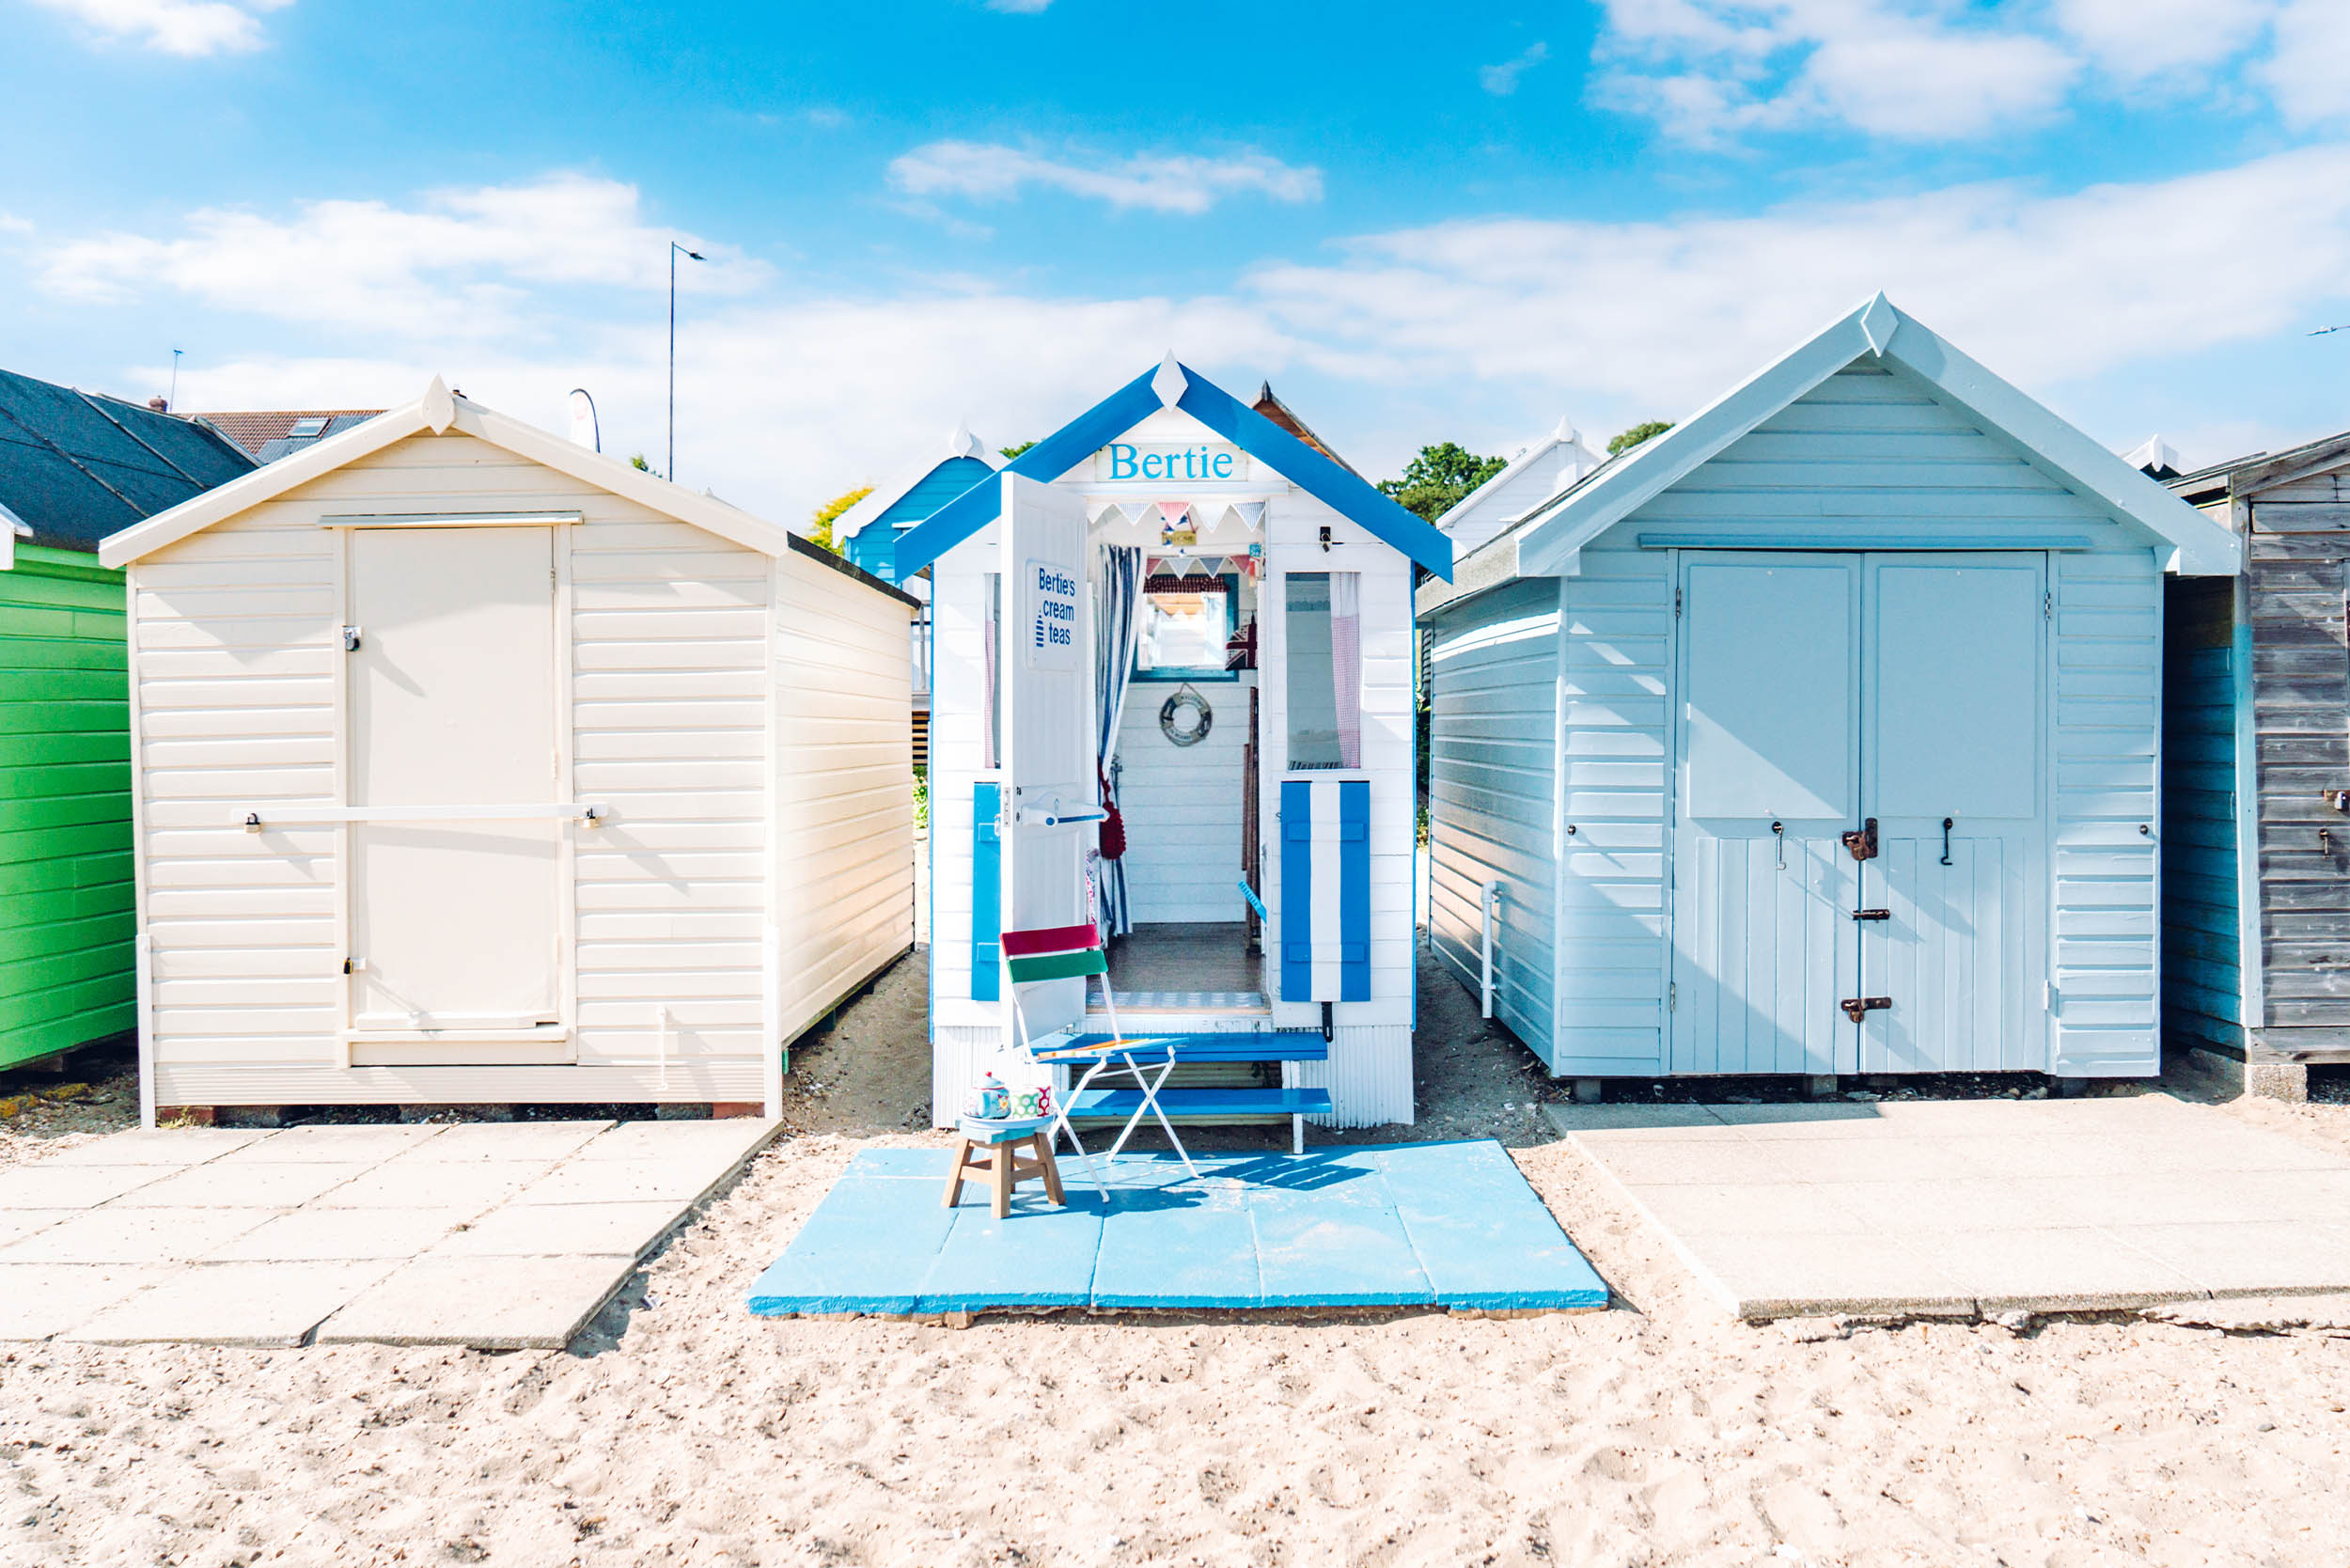 Bertie is a smaller hut but beautifully decorated in a quirky shabby chic style with a hardstanding base at the front and is very close to the cafe and the public conveniences